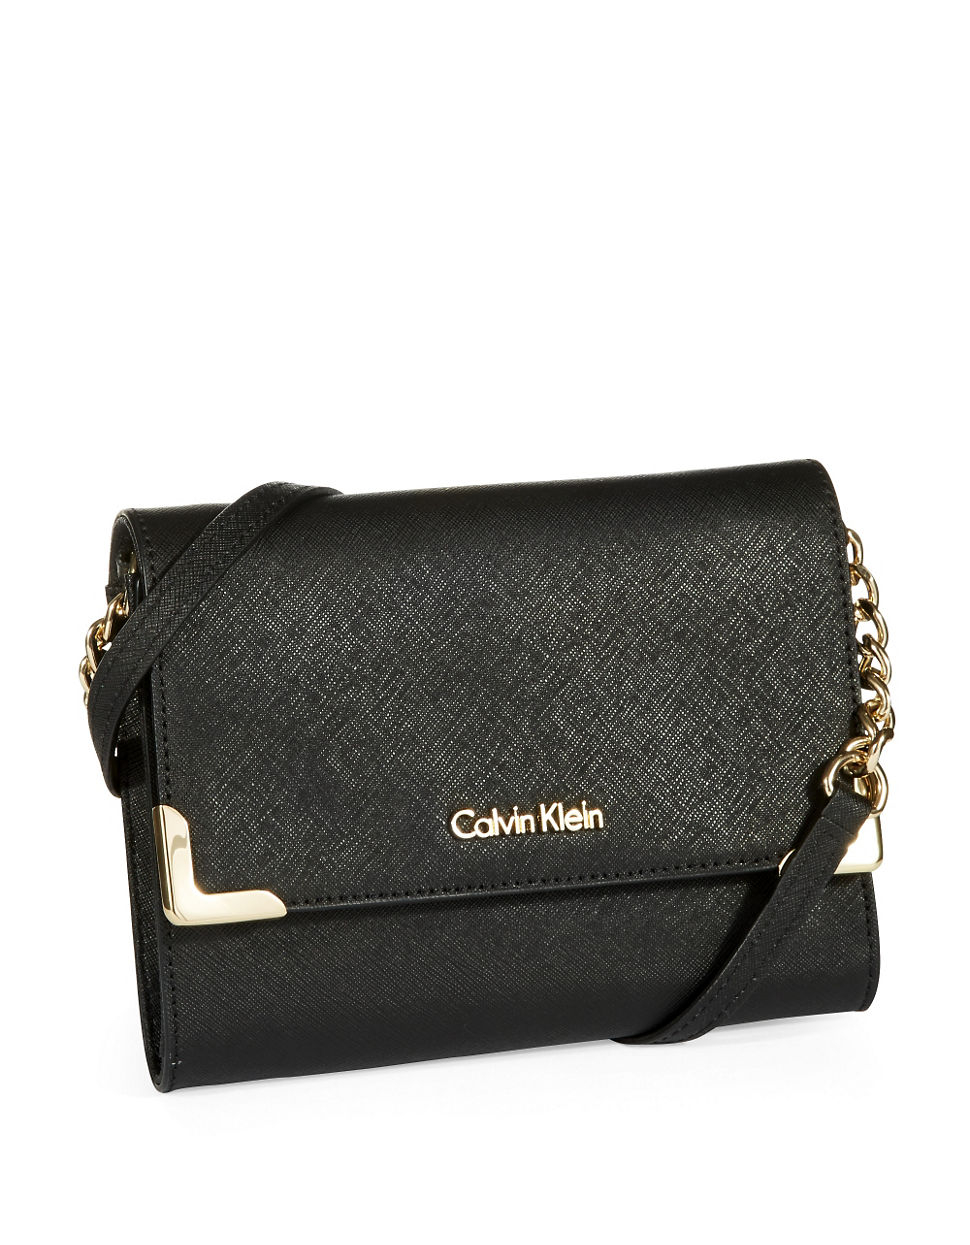 da531316120 Lyst - Calvin Klein Petite Crossbody Bag in Black